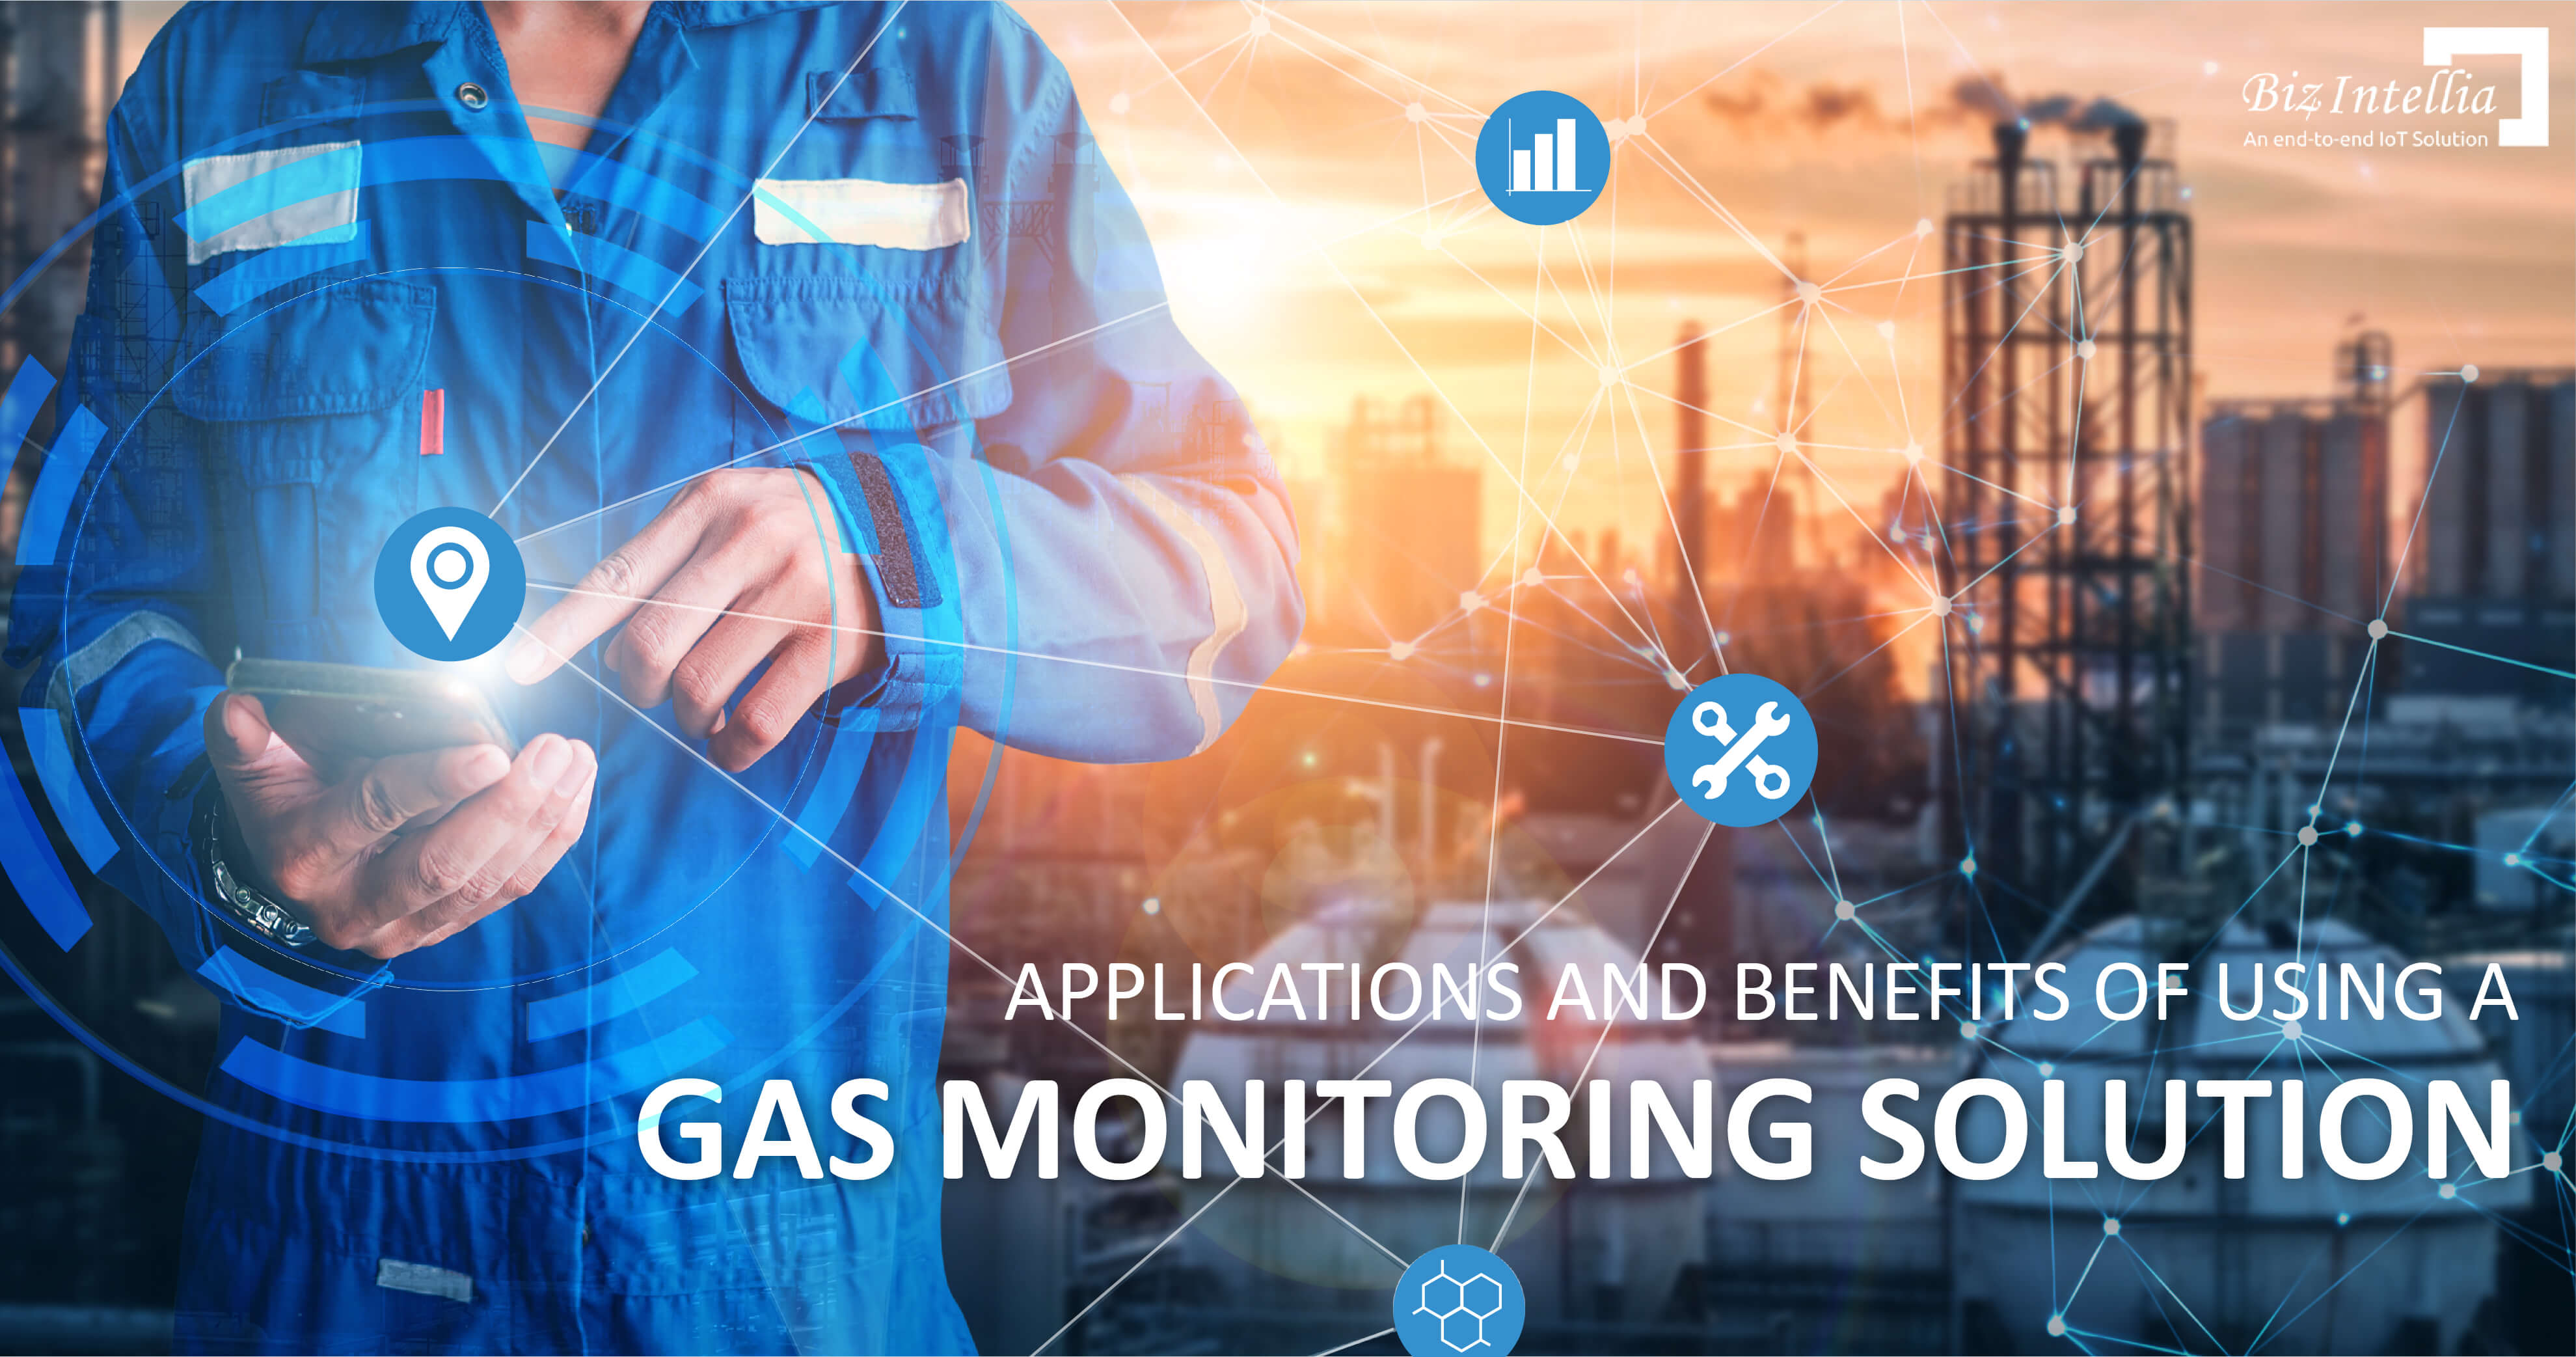 applications-and-benefits-of-using-gas-monitoring